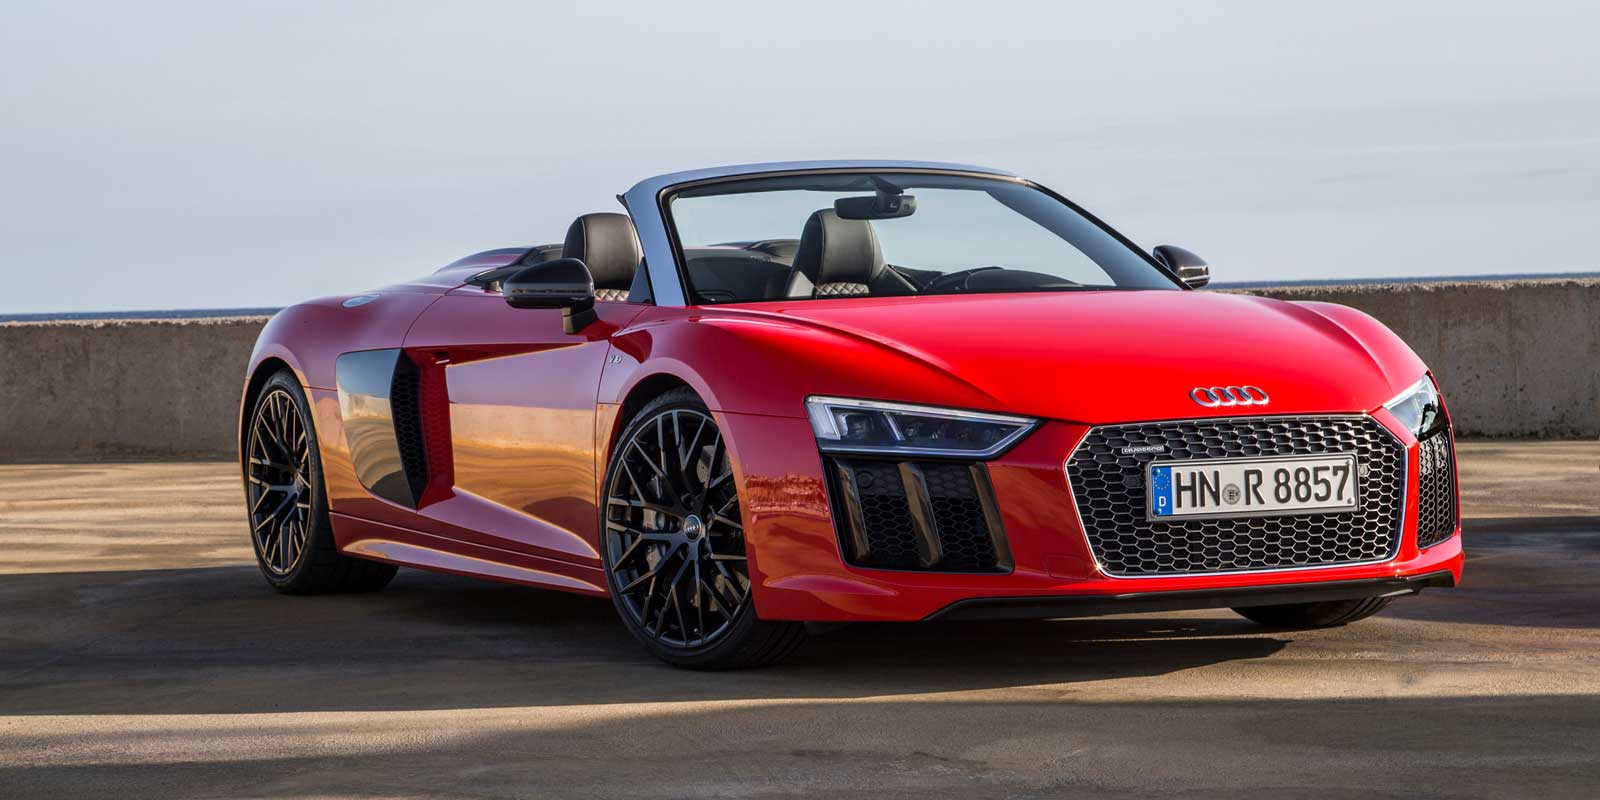 Audi R8 Spyder 2017 is the best choice for urban driving